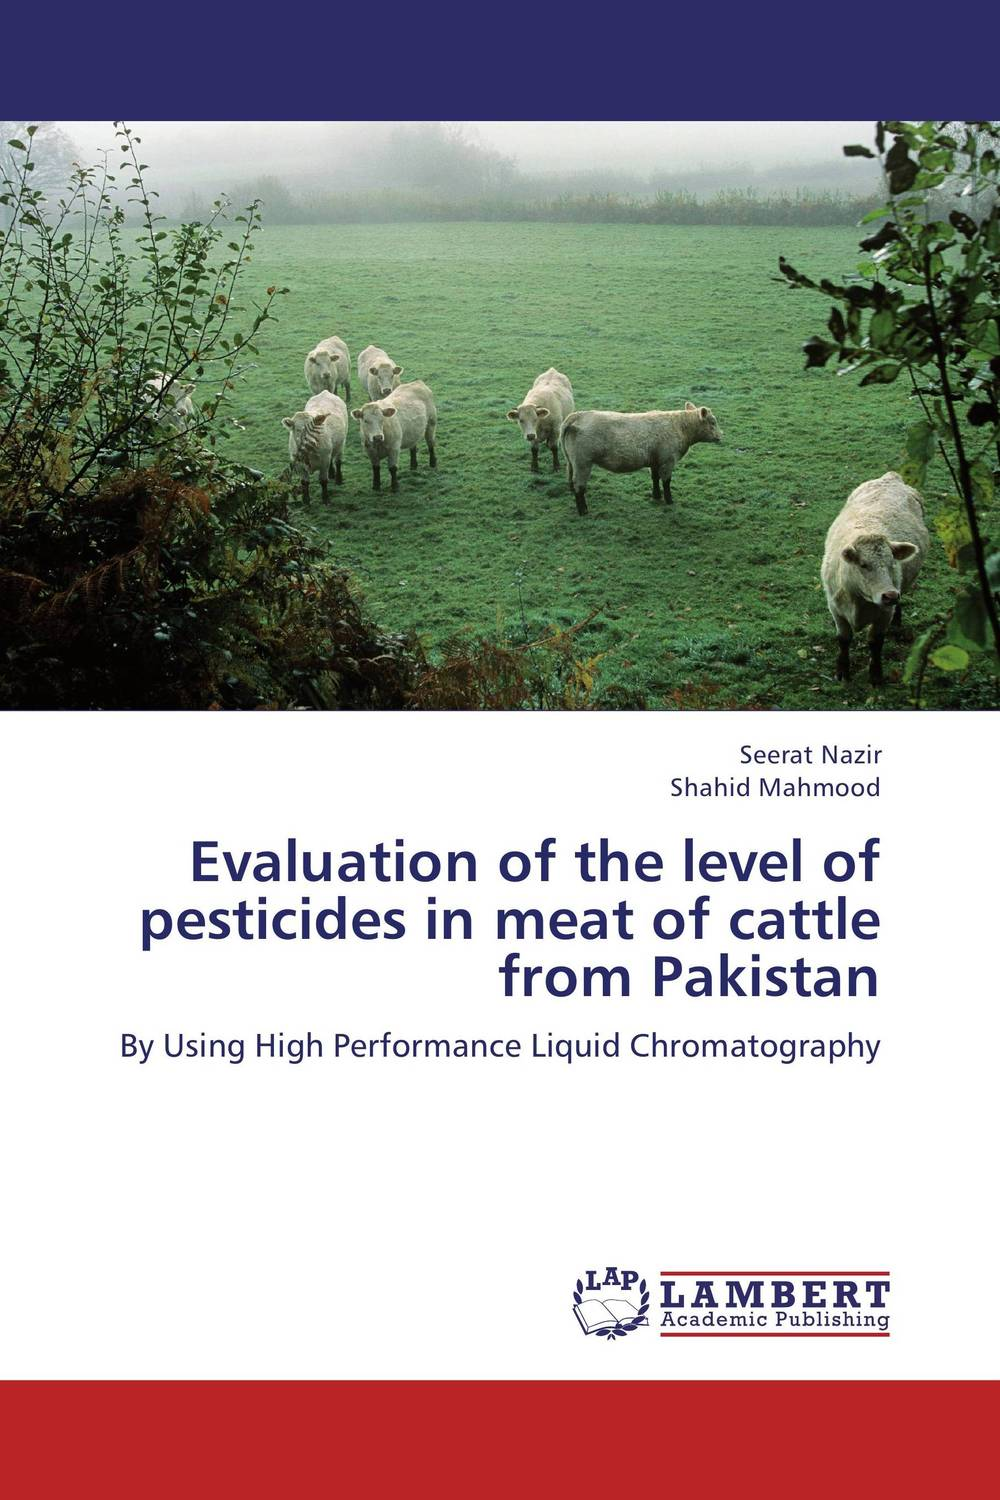 Evaluation of the level of pesticides in meat of cattle from Pakistan therapeutic management of infertility in cattle